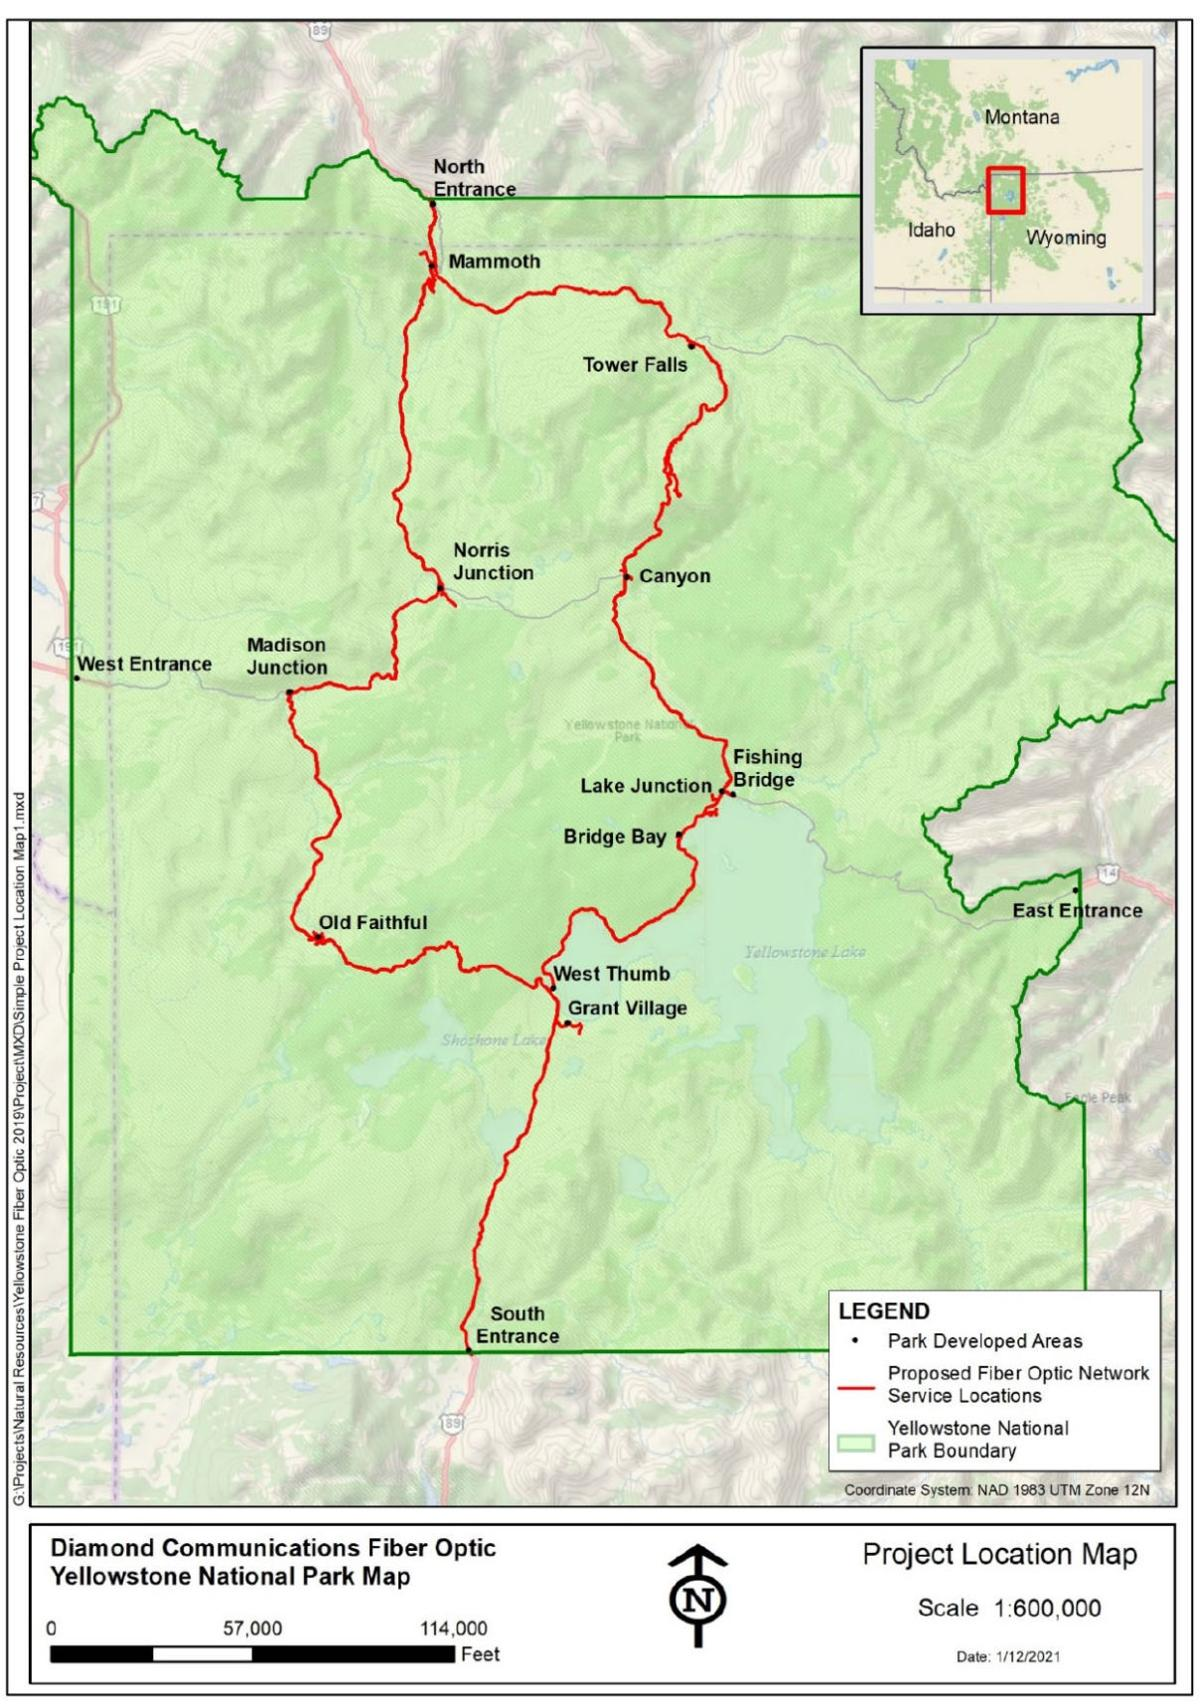 Yellowstone National Park proposed fiber optic network